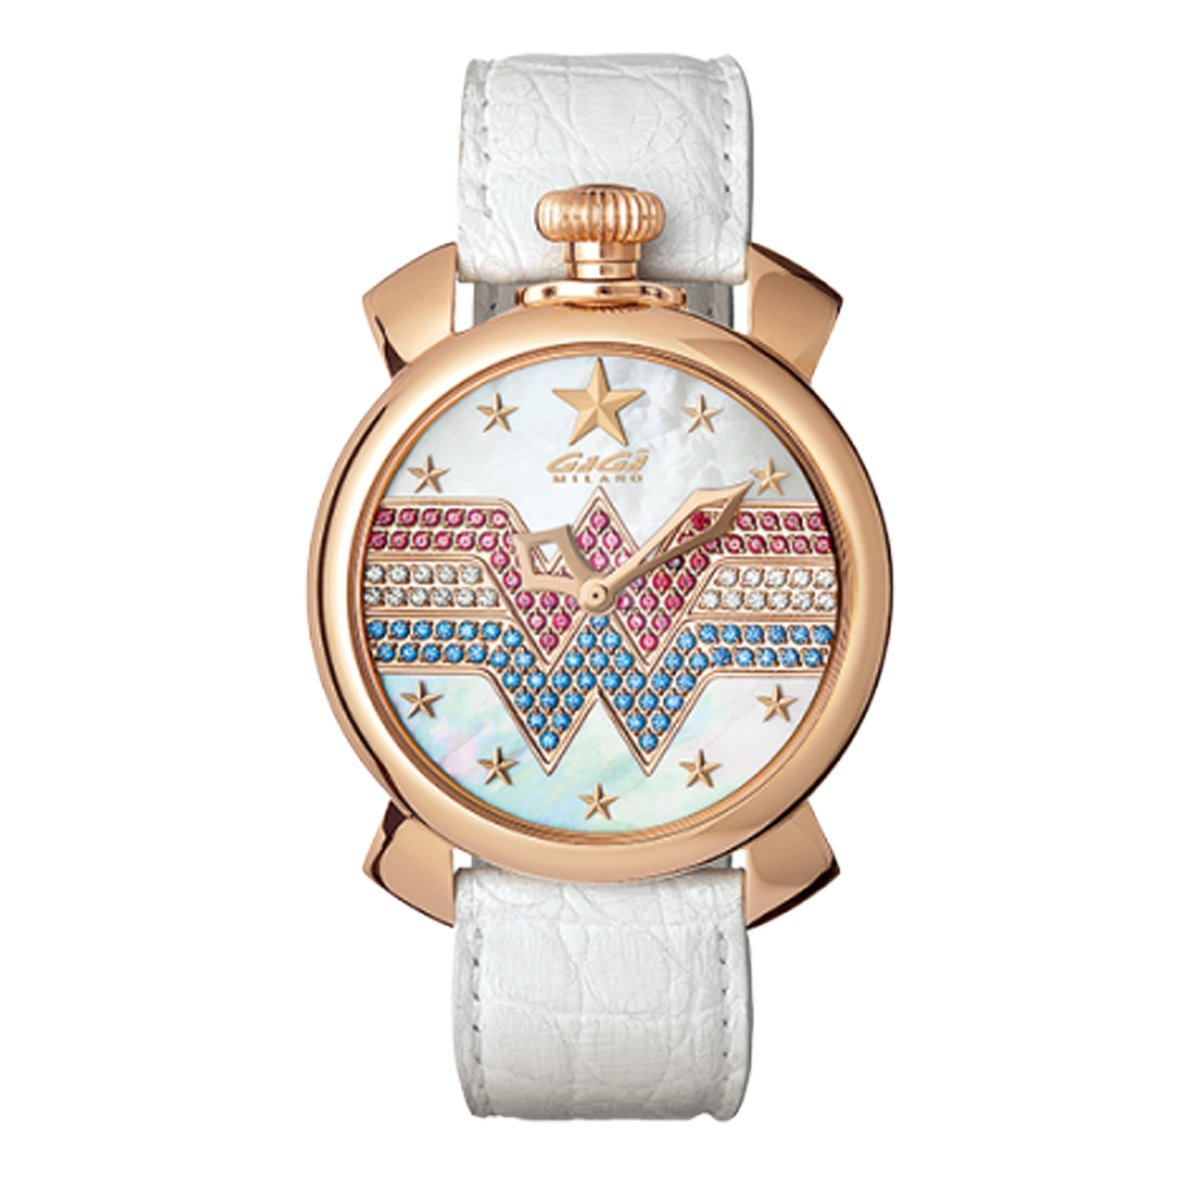 GaGà Milano Manuale 40MM Wonder Woman Limited Edition - Watches & Crystals